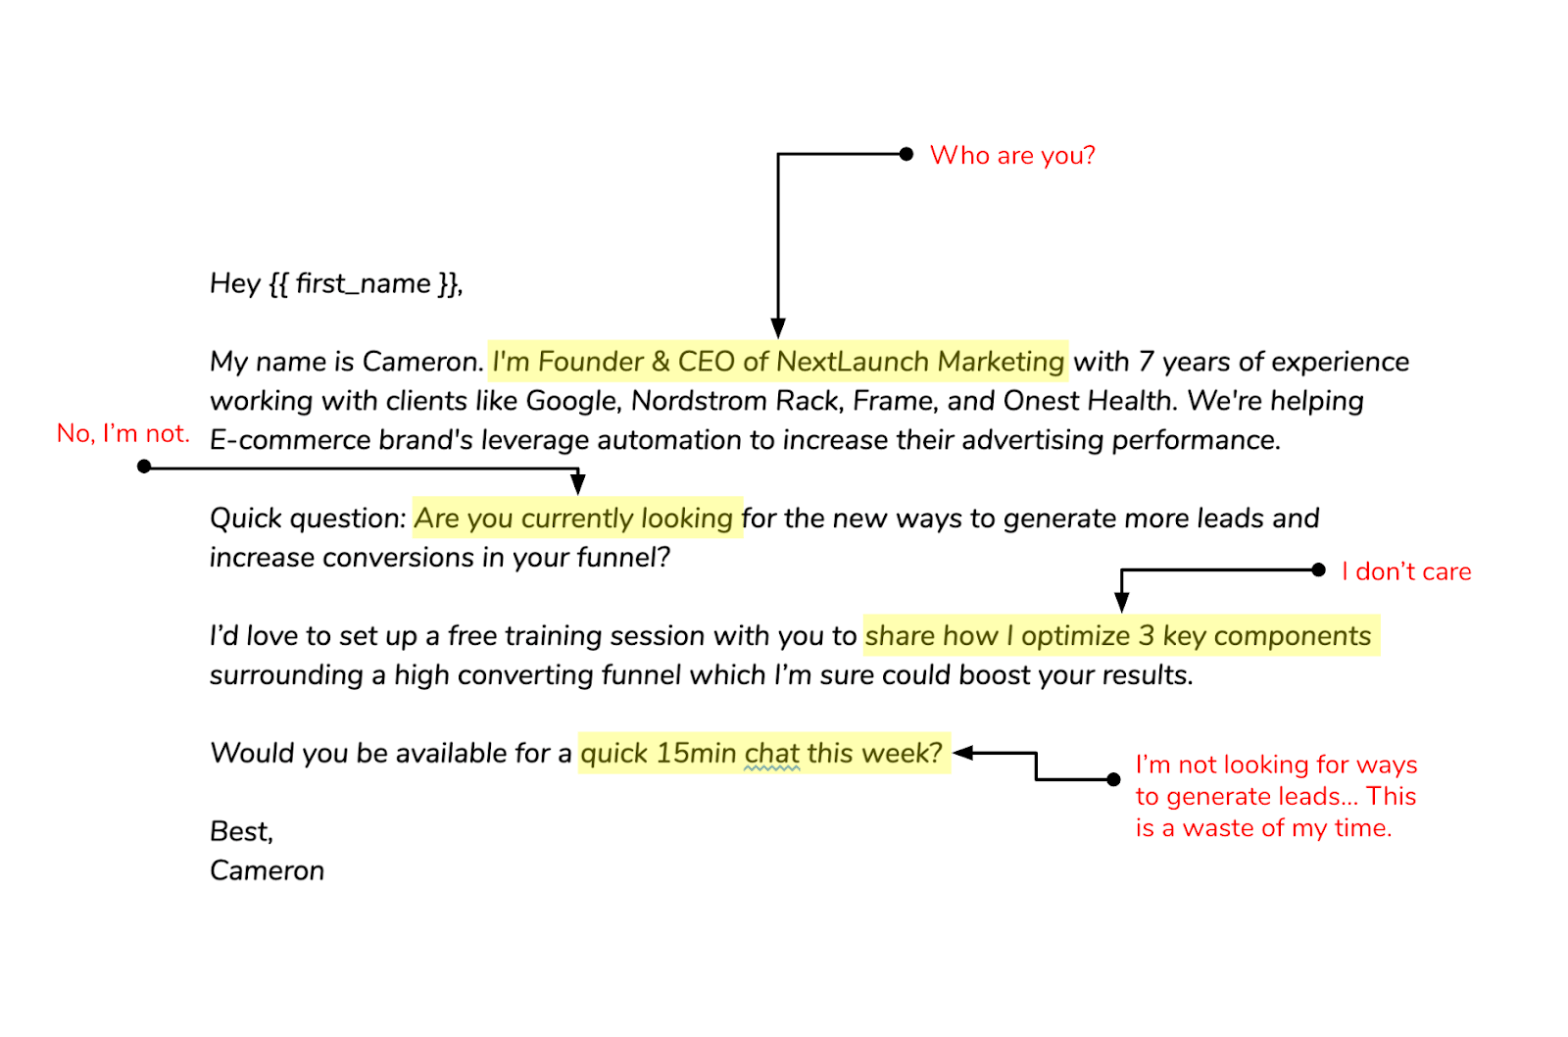 How to Prospect using LinkedIn + Personalized Email Campaigns